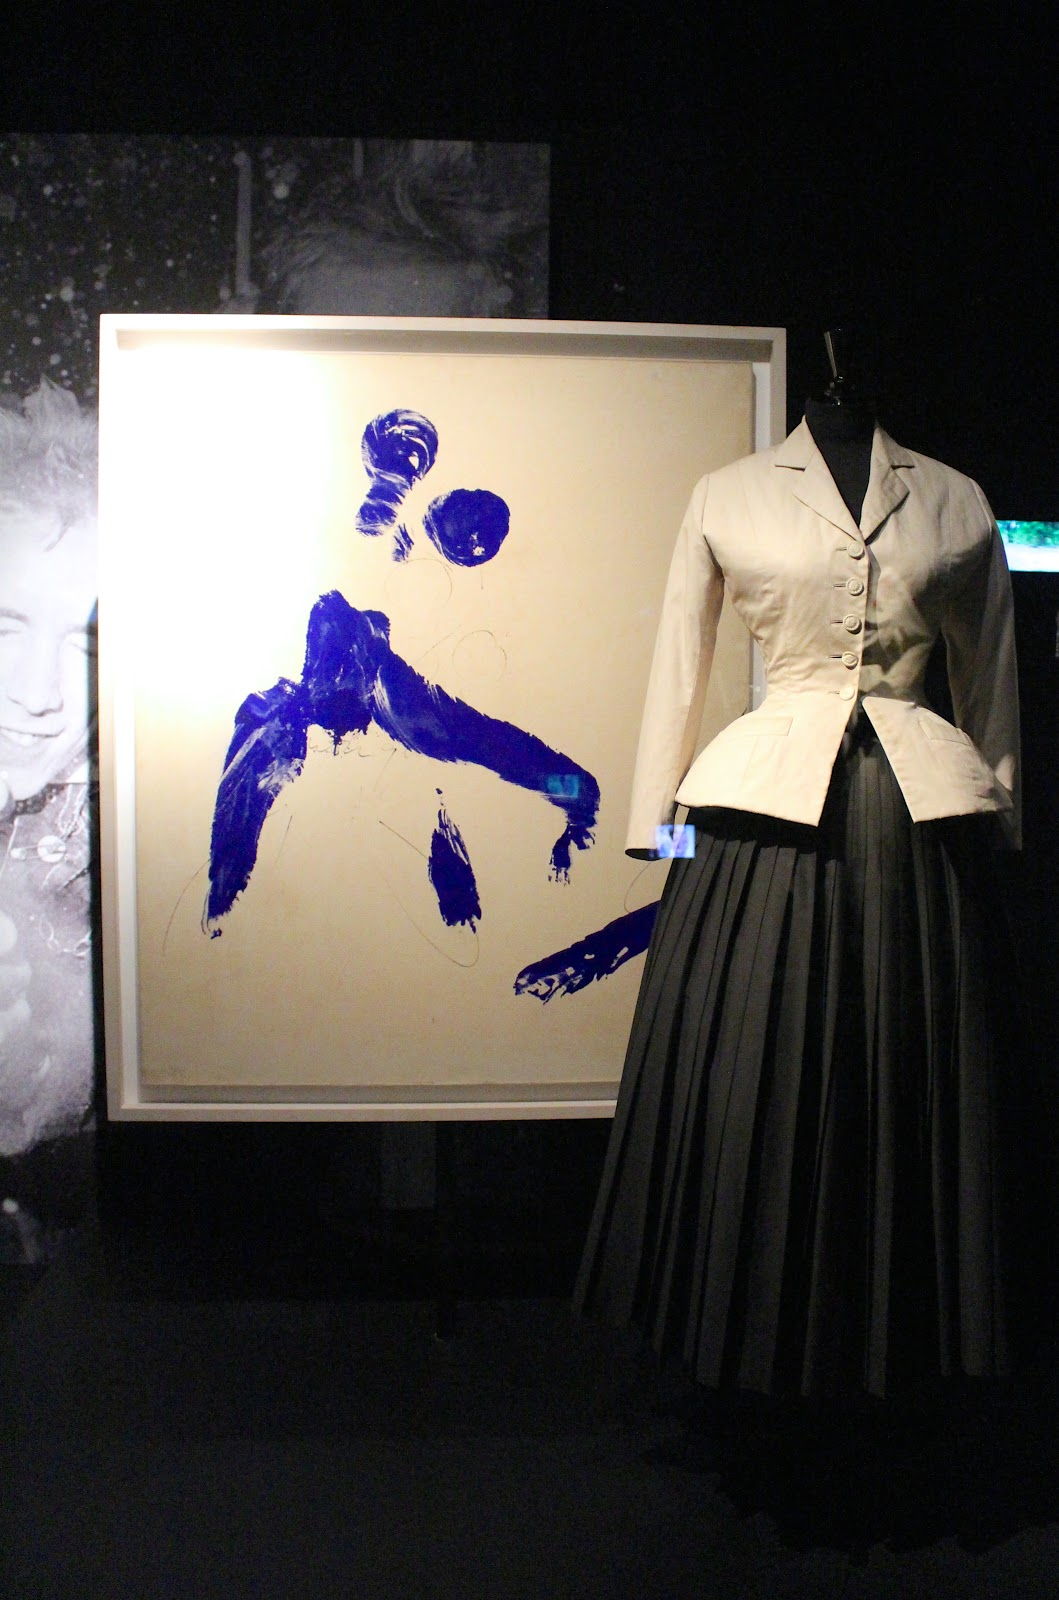 Dries Van Noten Inspirations MoMu Yves Klein